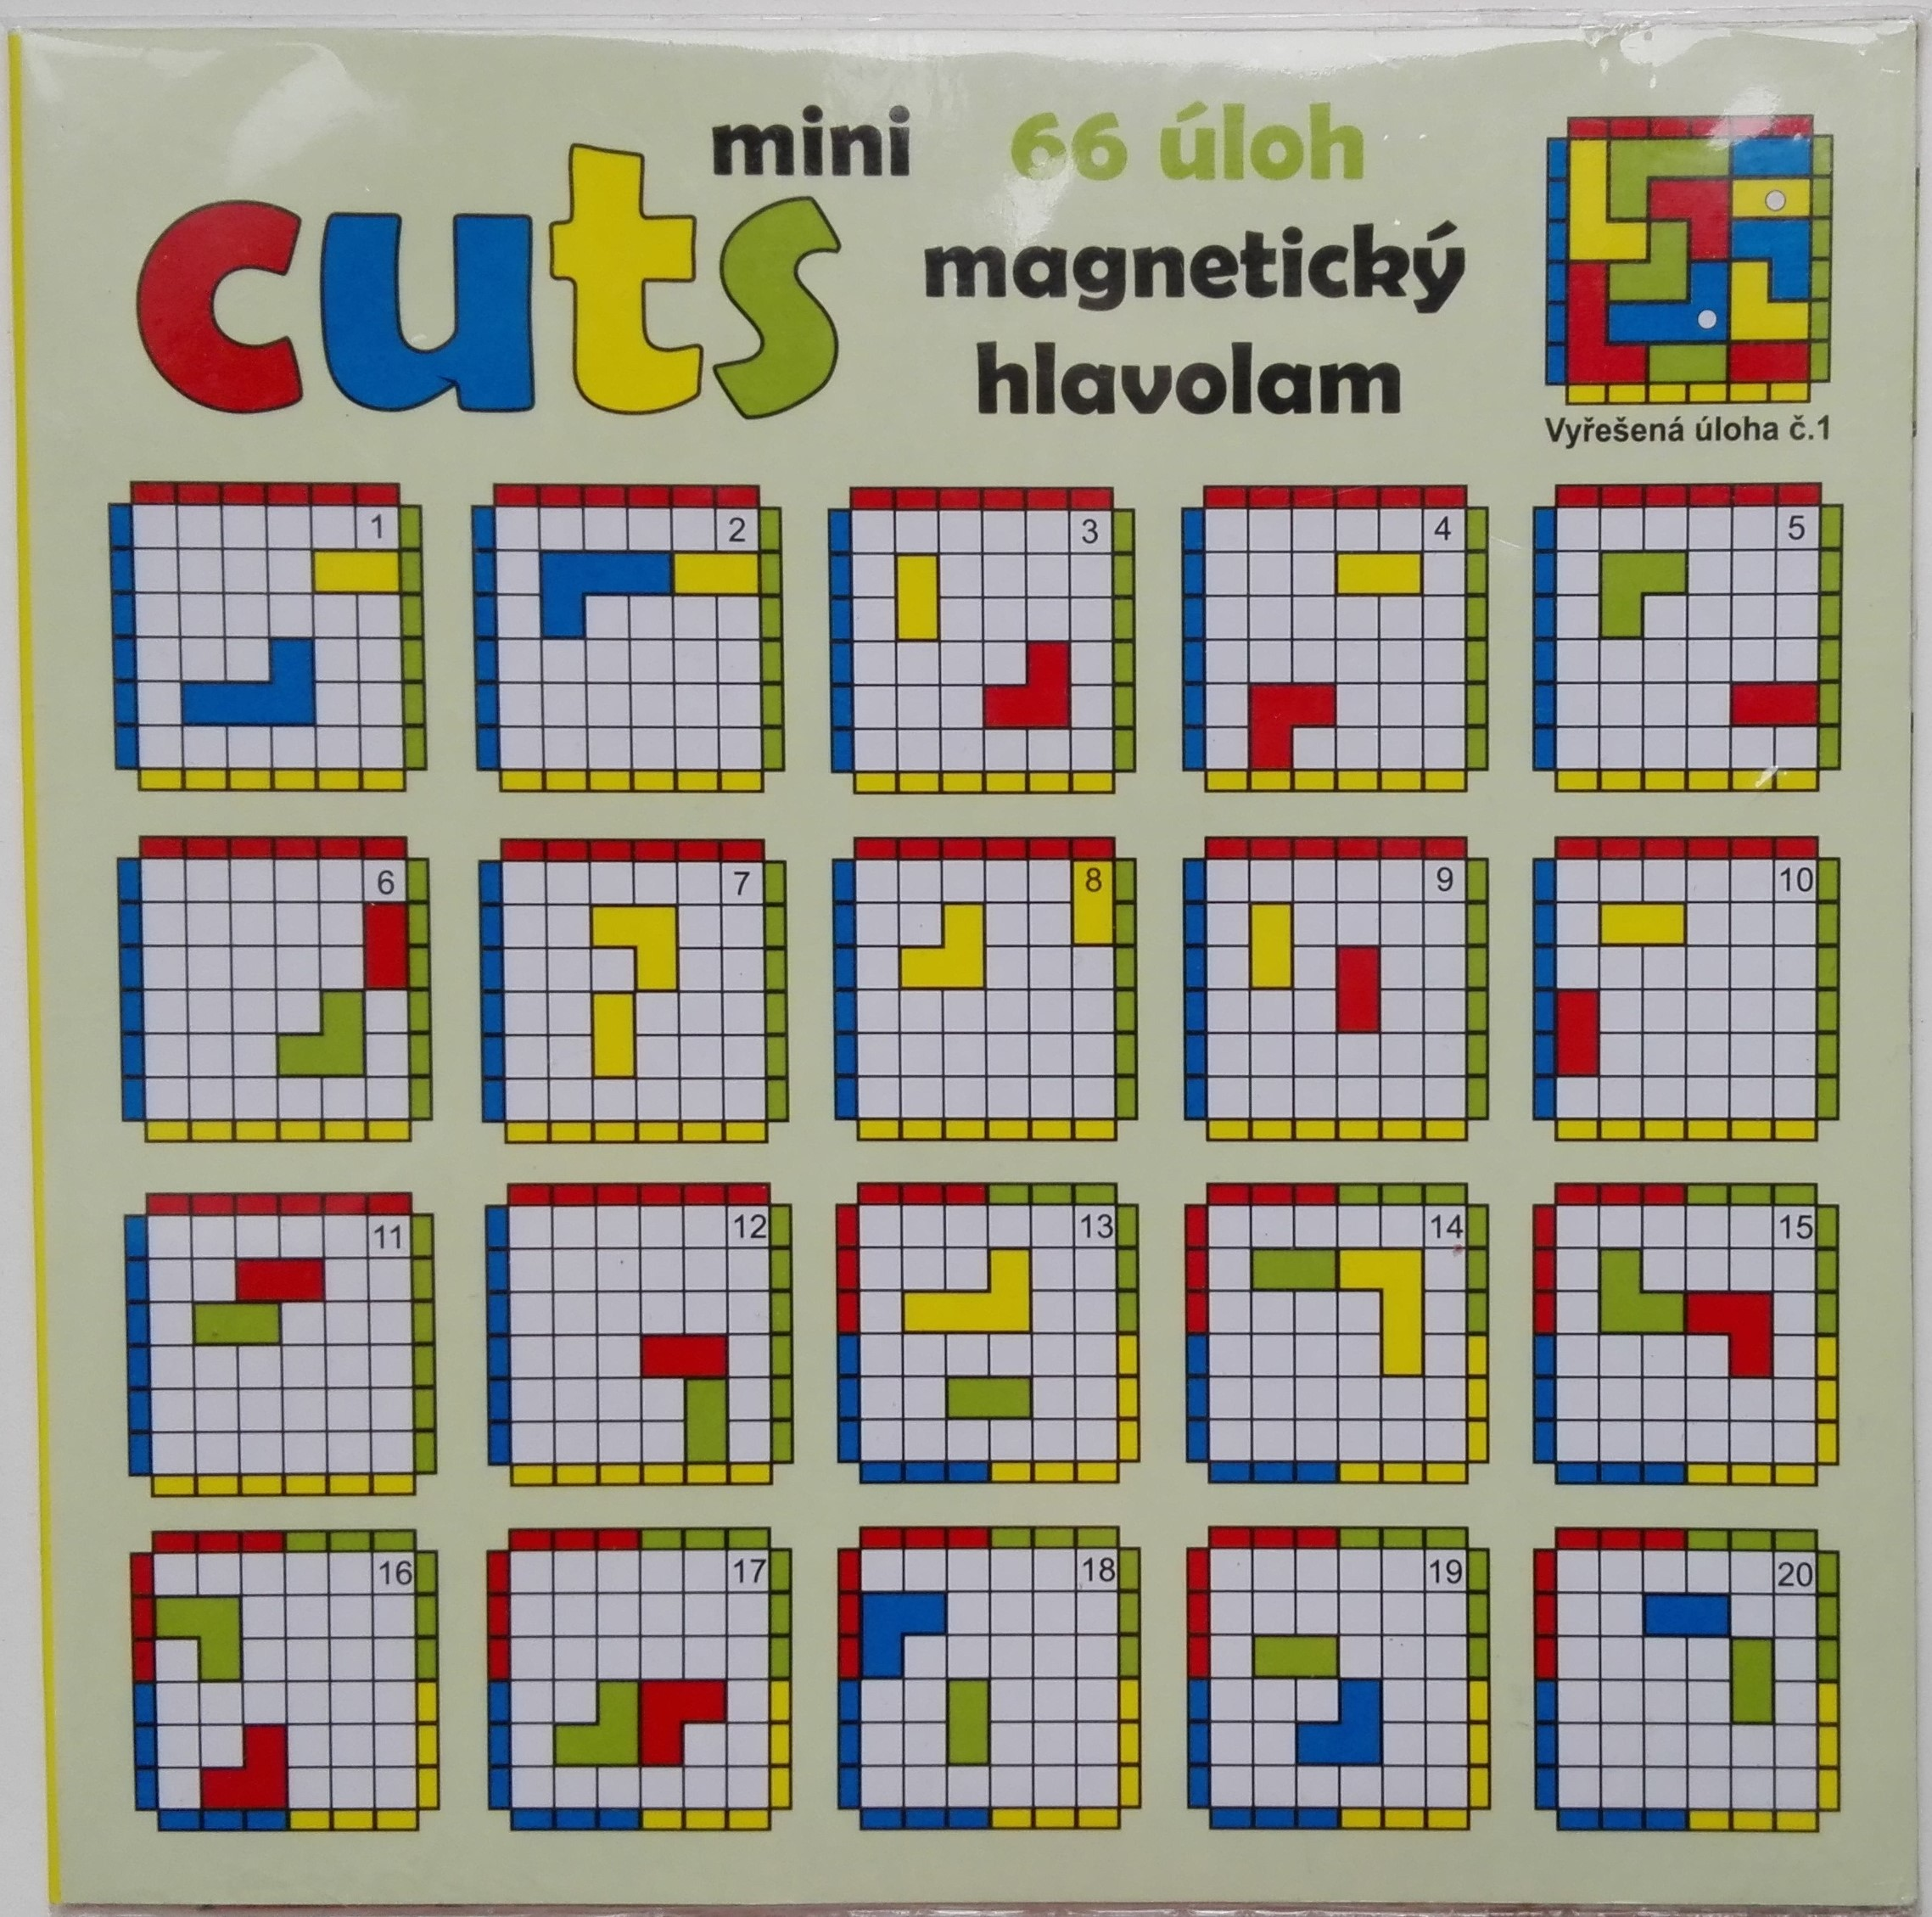 CUTS mini - 66 úloh